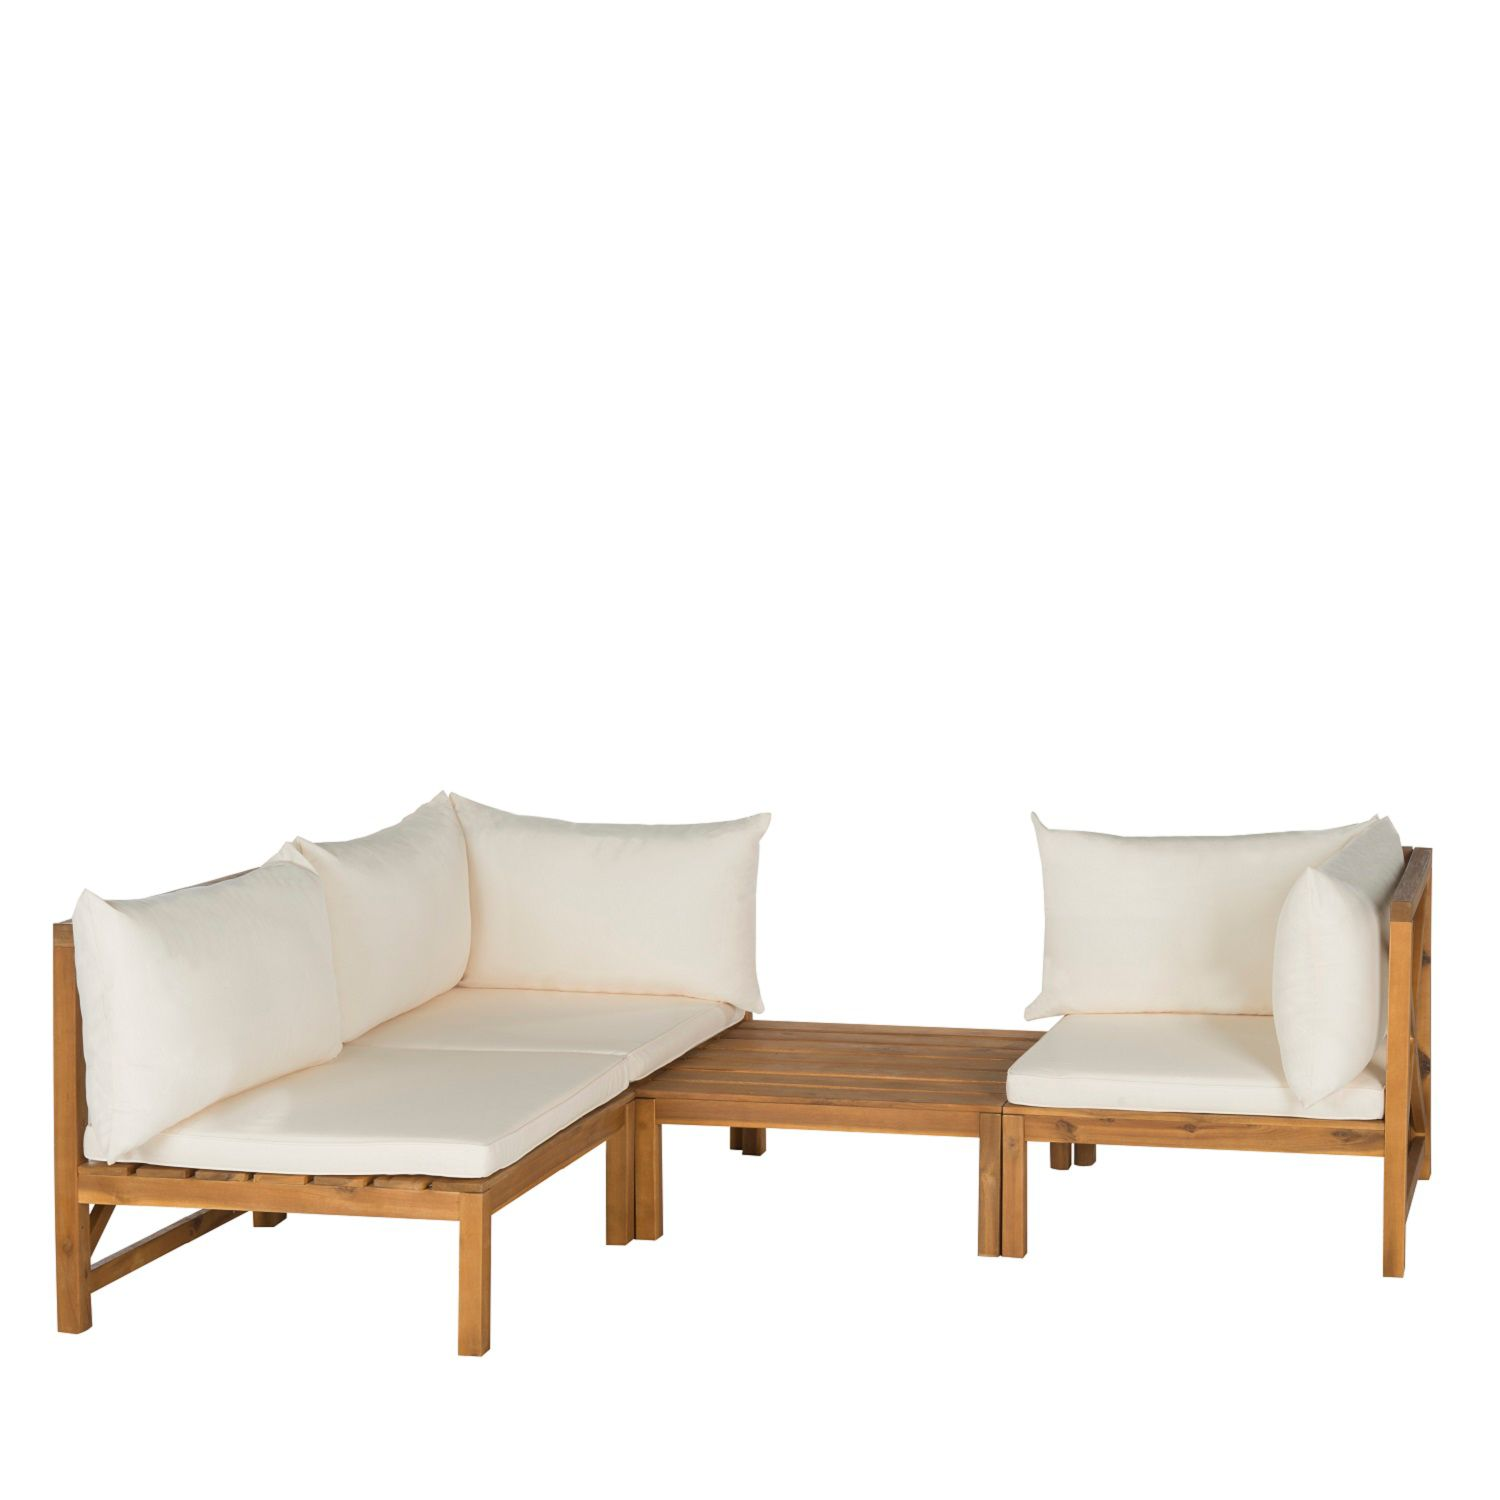 Safavieh Lynwood 3 Piece Outdoor Sectional Sofa Set